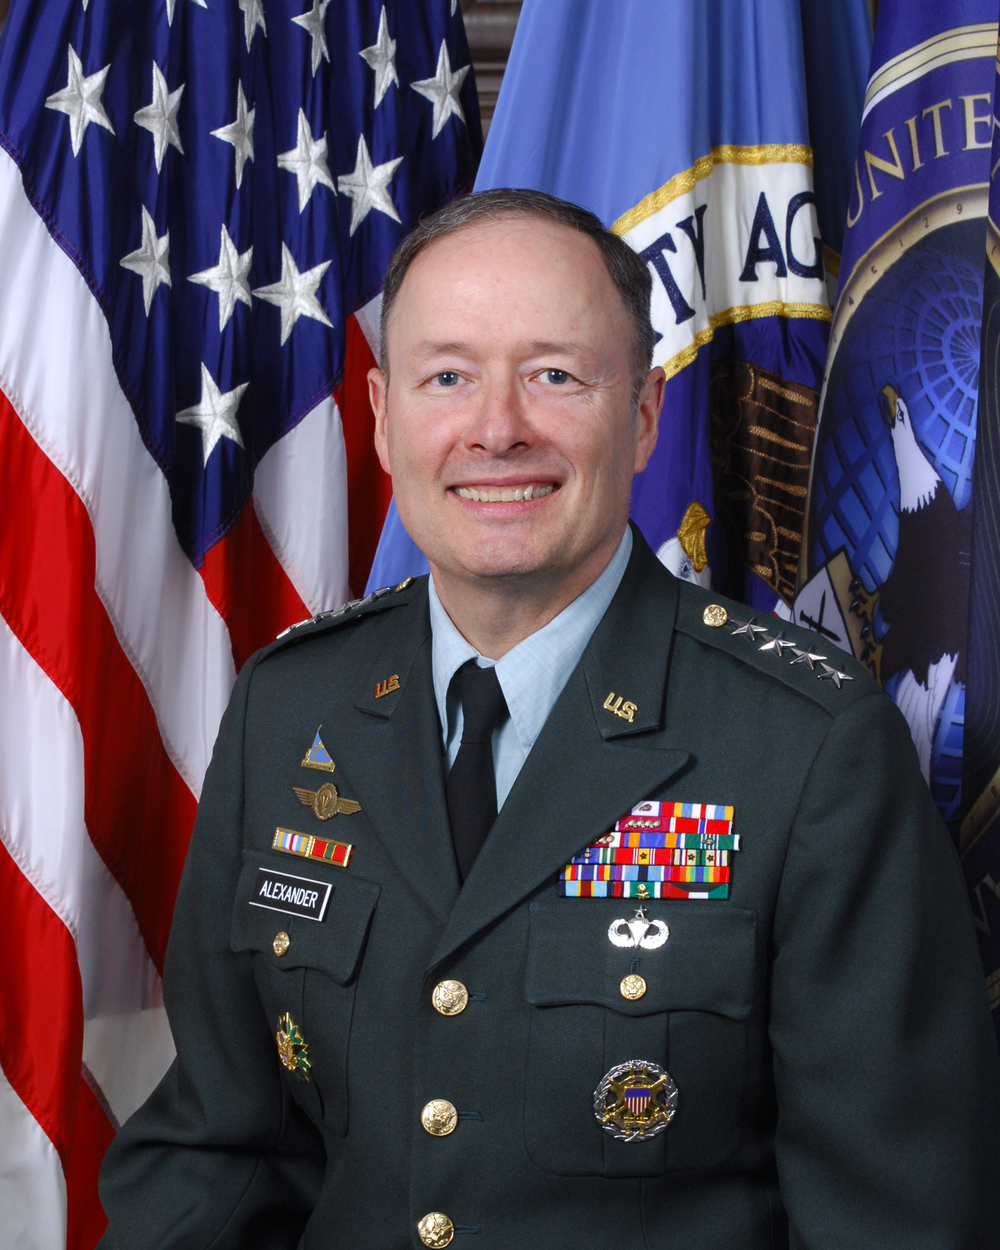 Above: Director of the National Security Agency (NSA), General Keith B.Alexander US Army